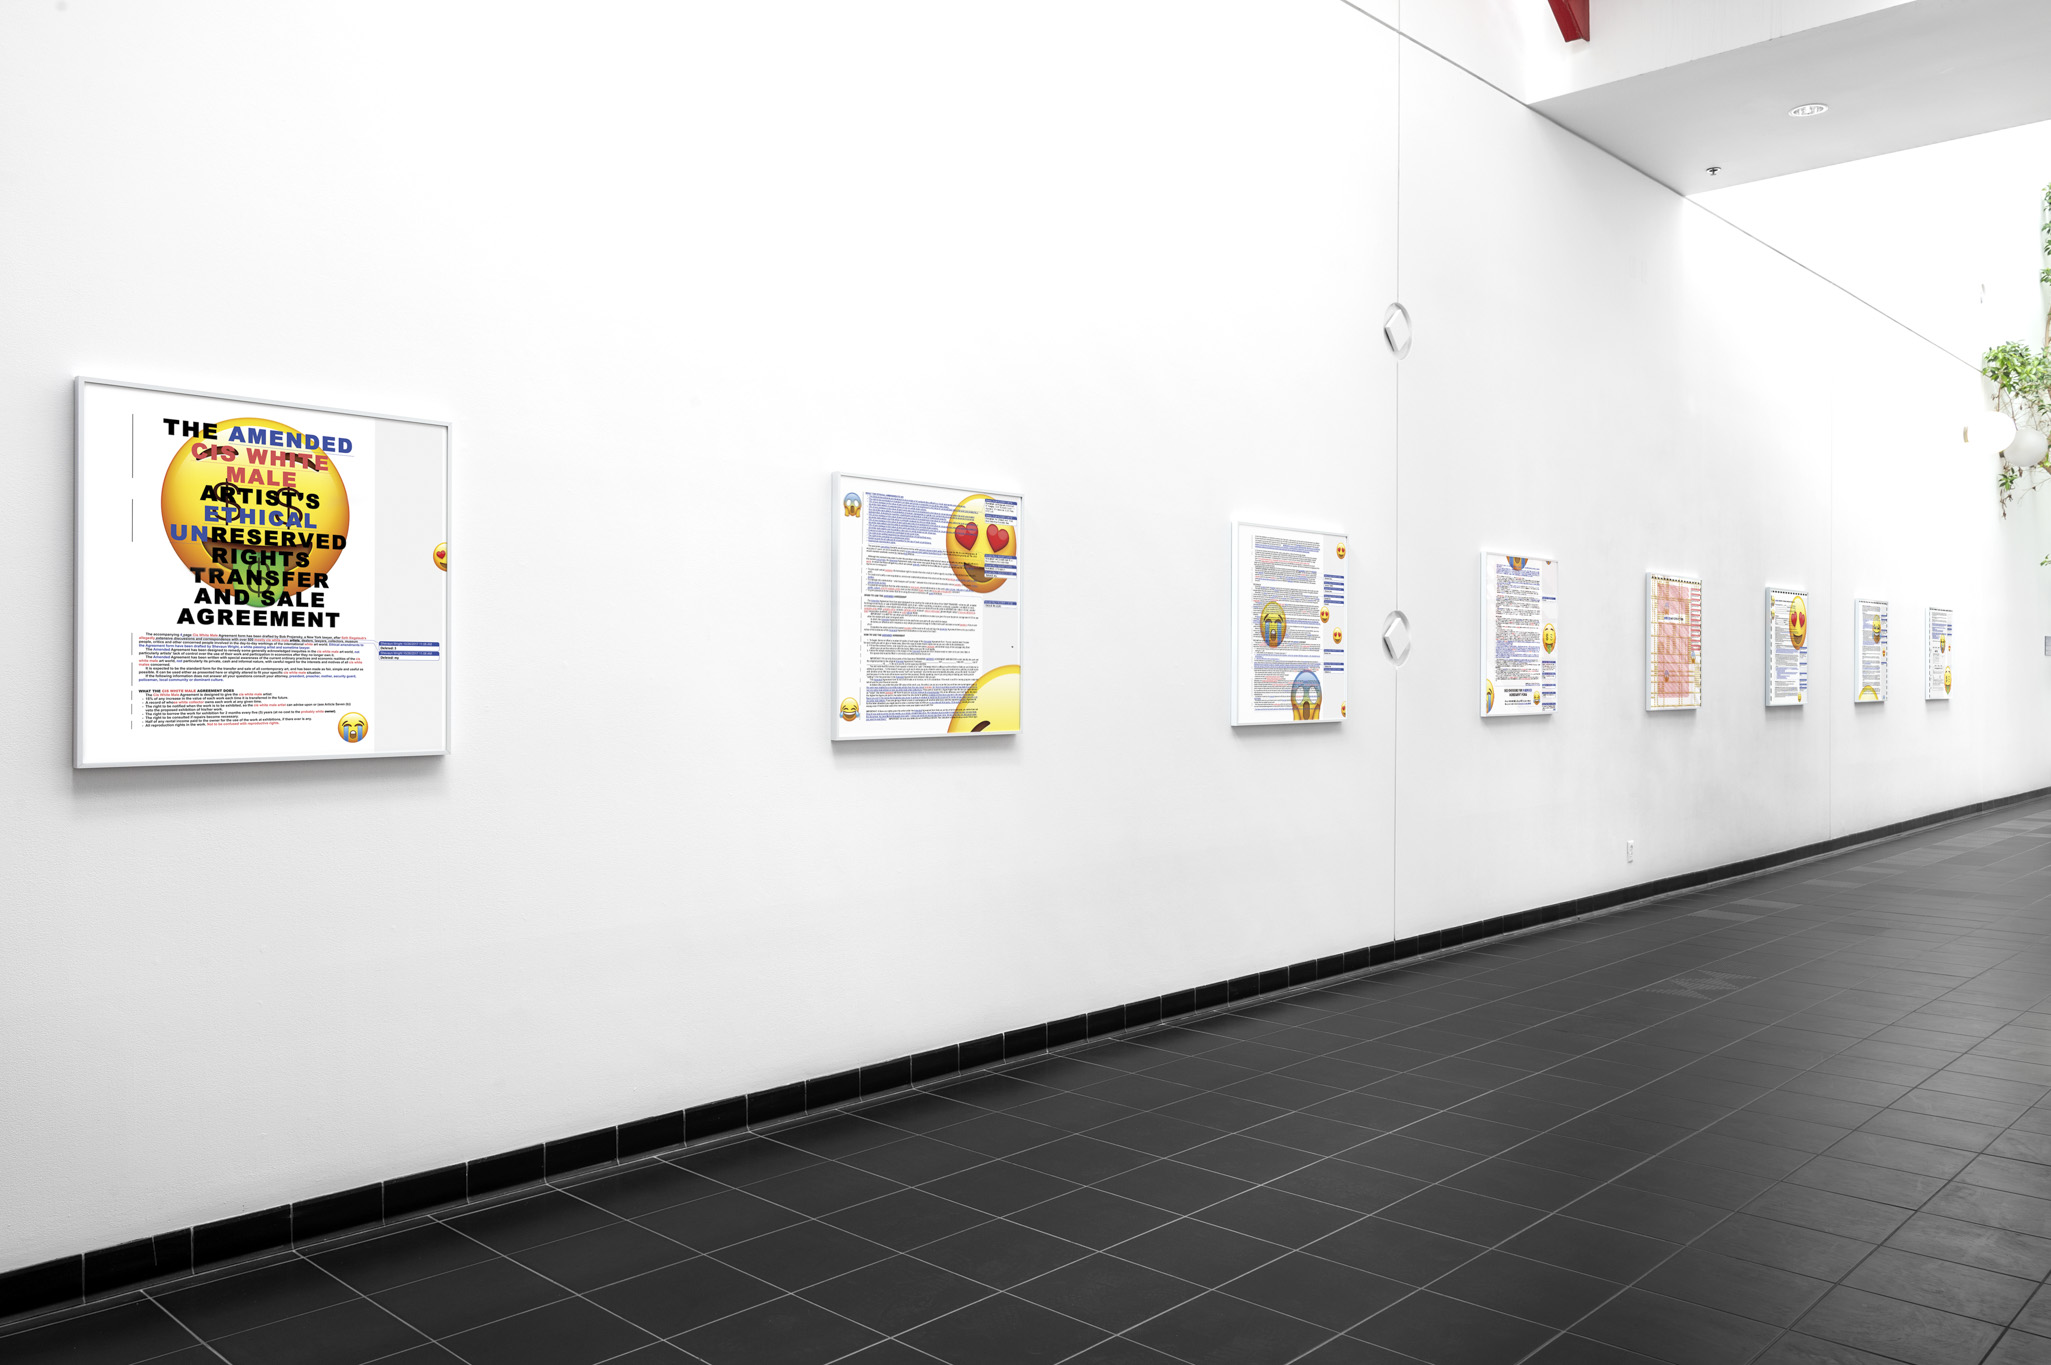 Eight artworks line a white hallway with black tile floors. The artworks are hung in white frames and each has a document inside it with a variety of emojis overlaid on top.